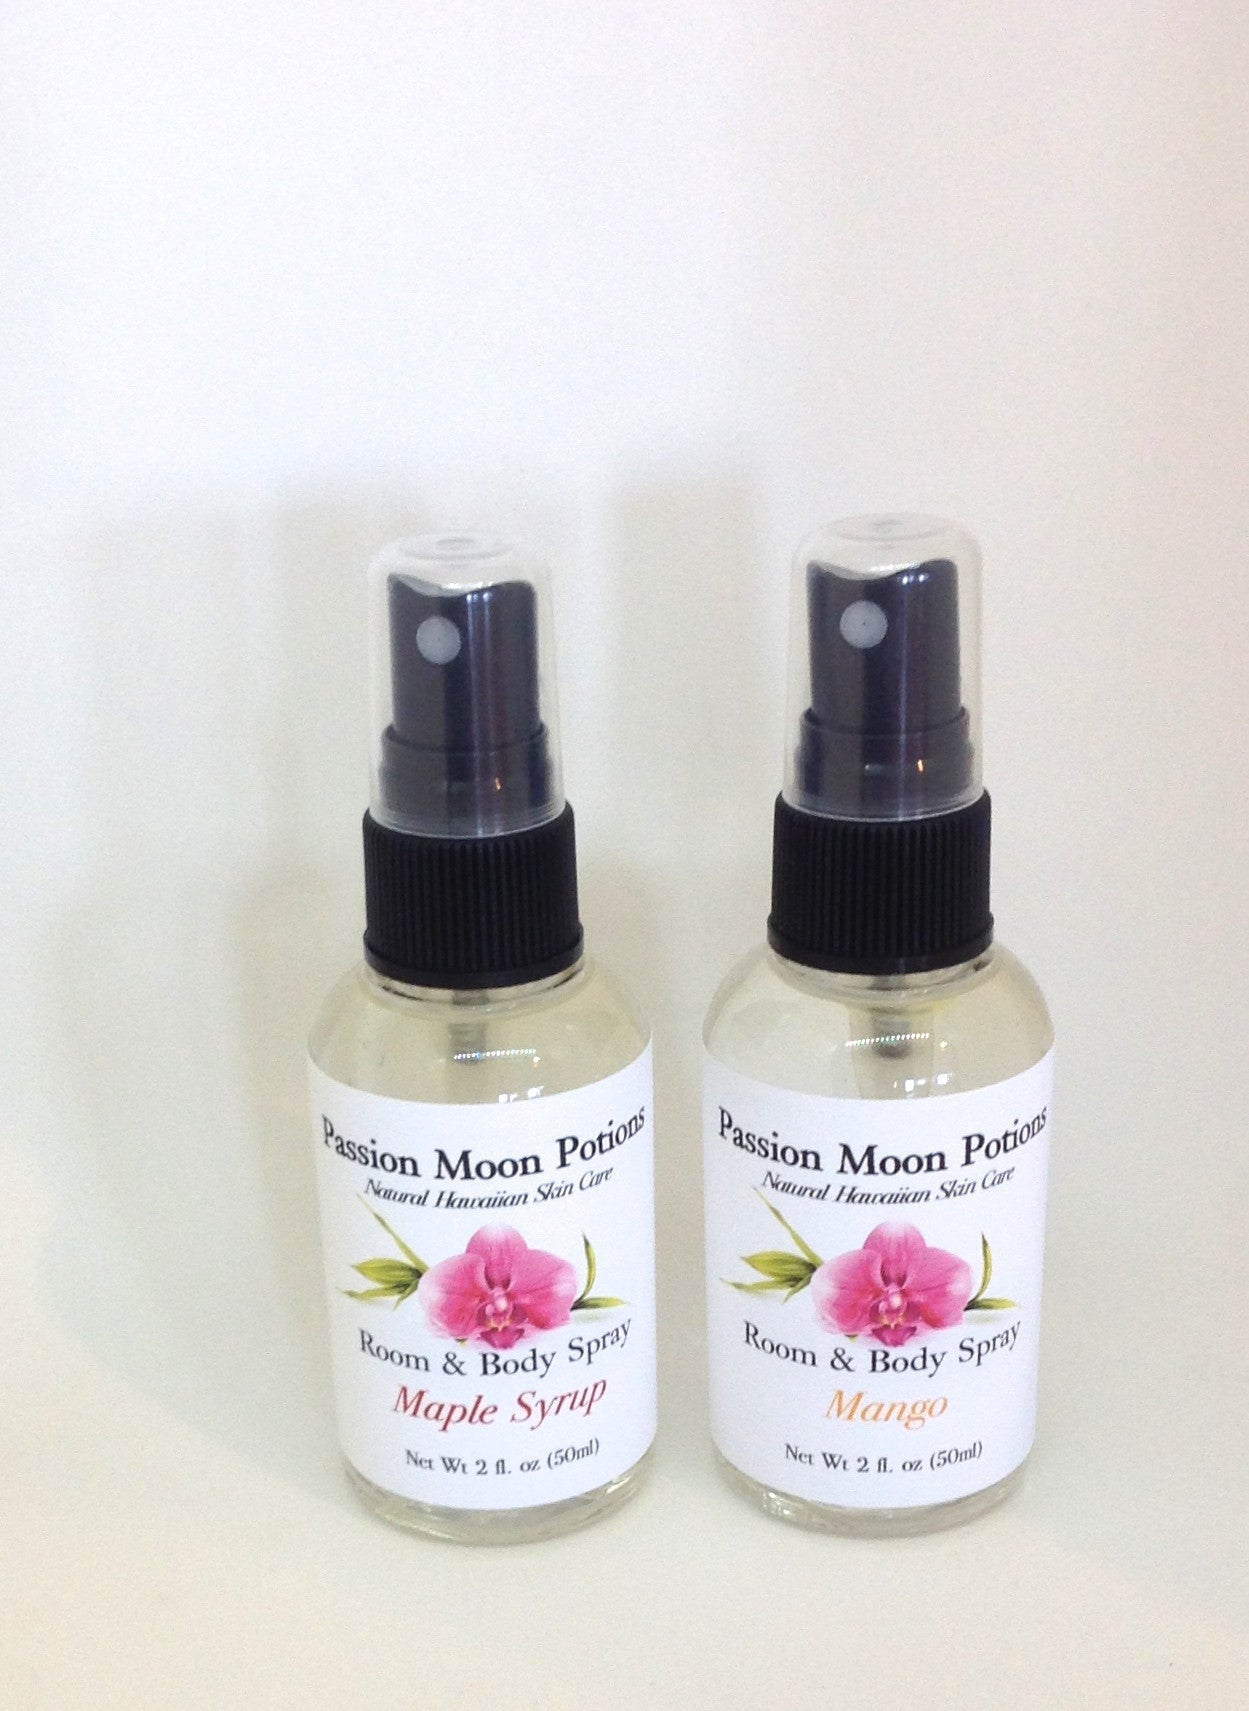 Room and Body Sprays - Passion Moon Potions - 3